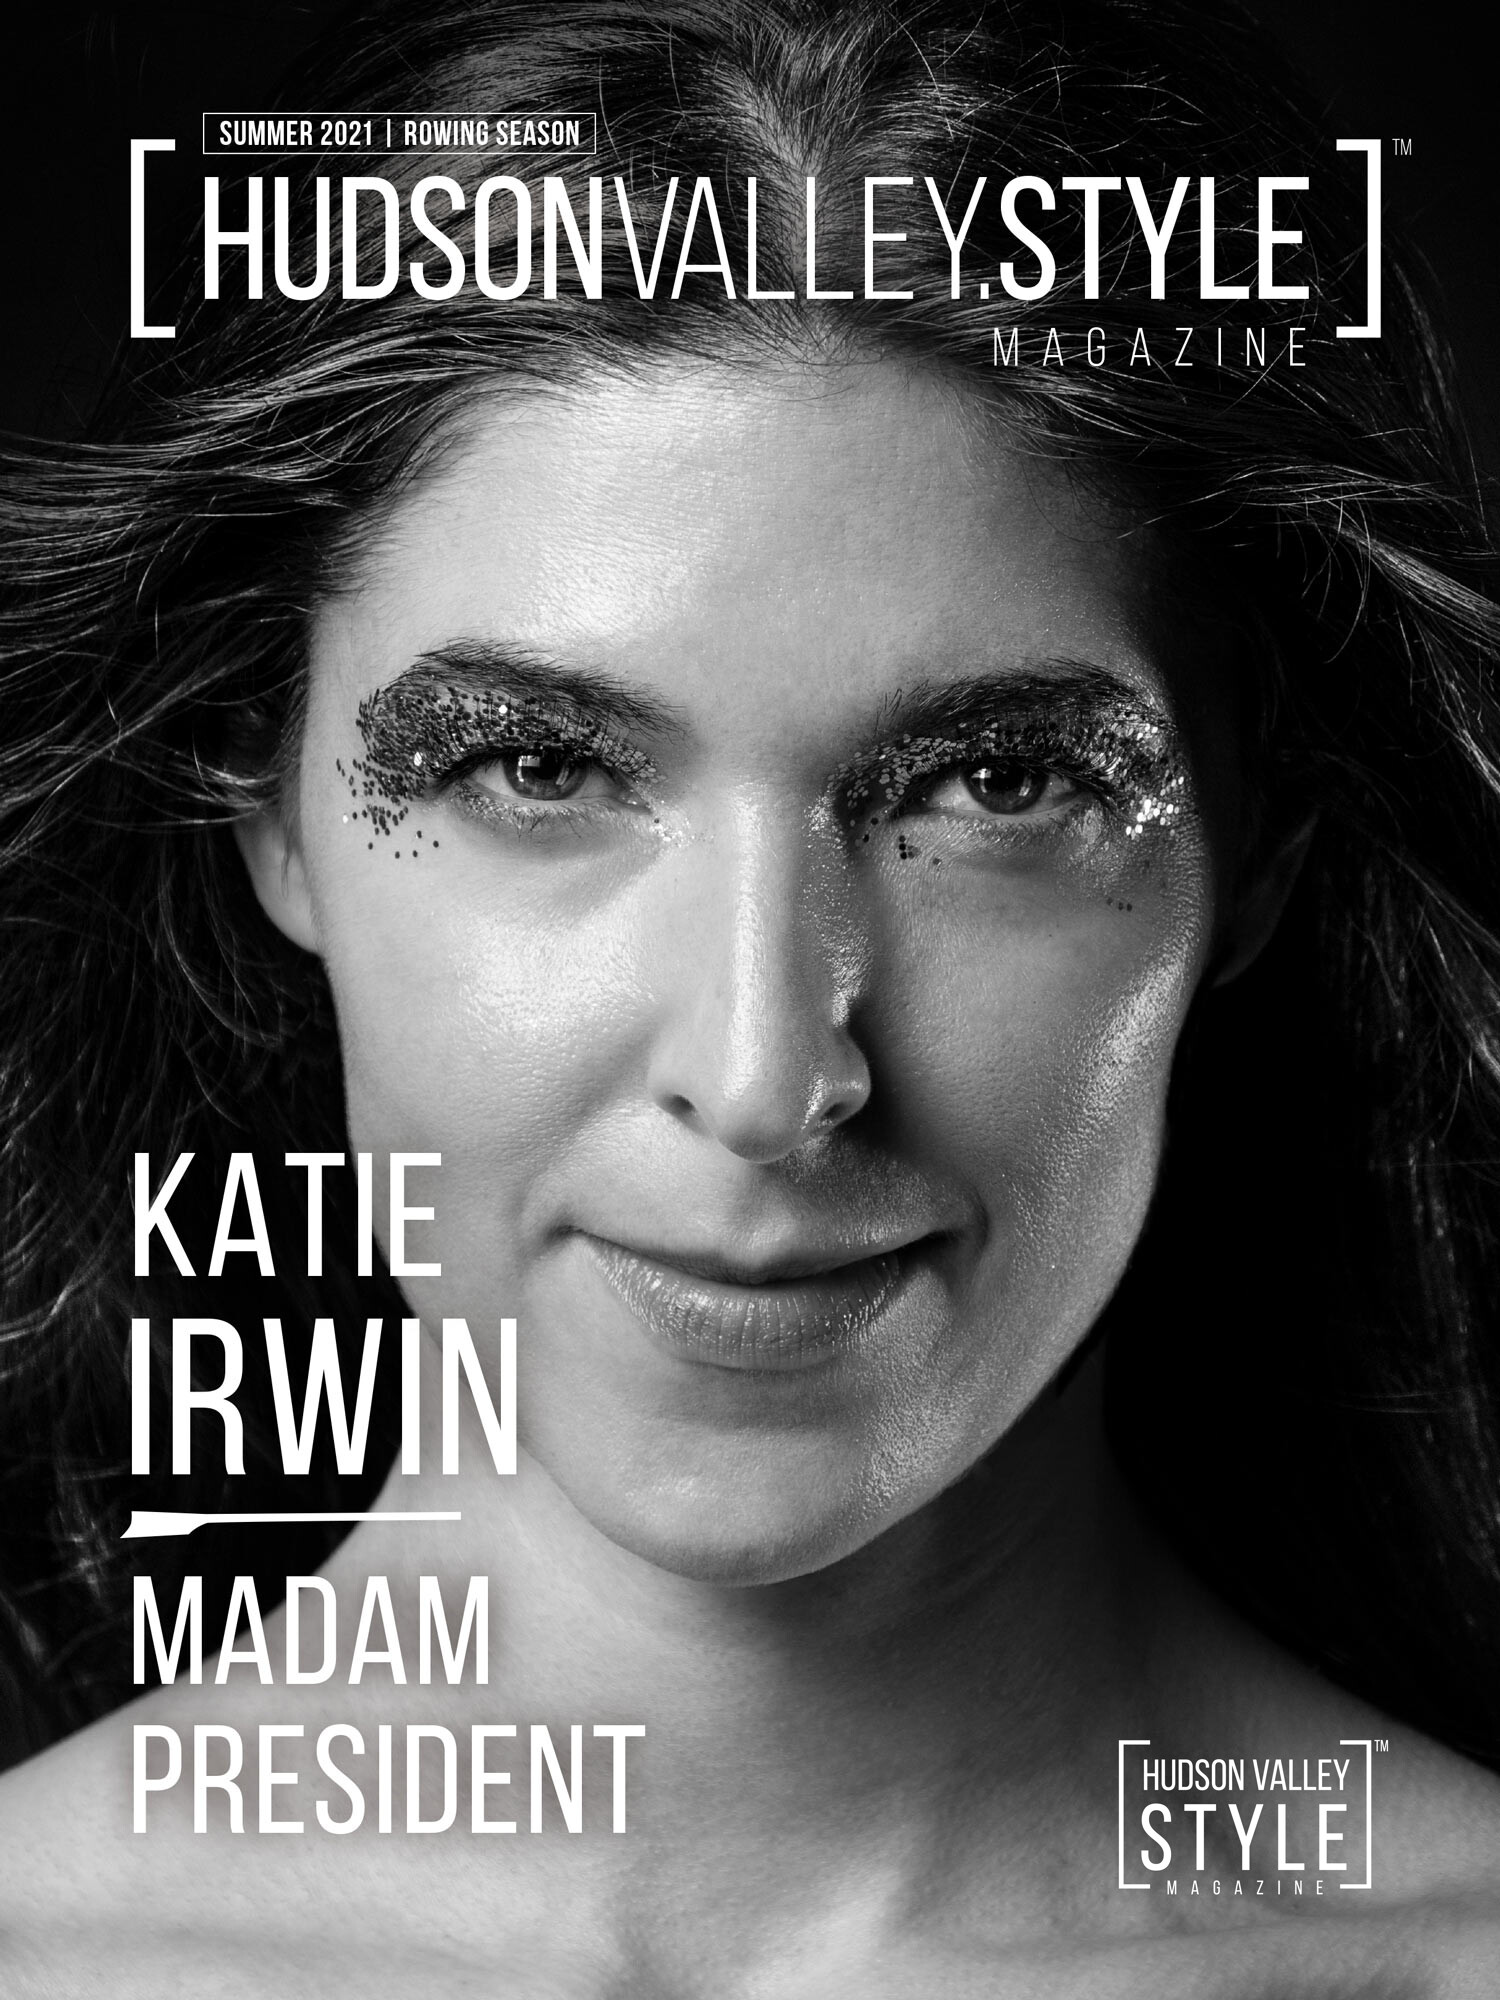 Summer 2021 Cover Story: Exclusive Interview with Hudson Valley's own Madam President Katie Irwin